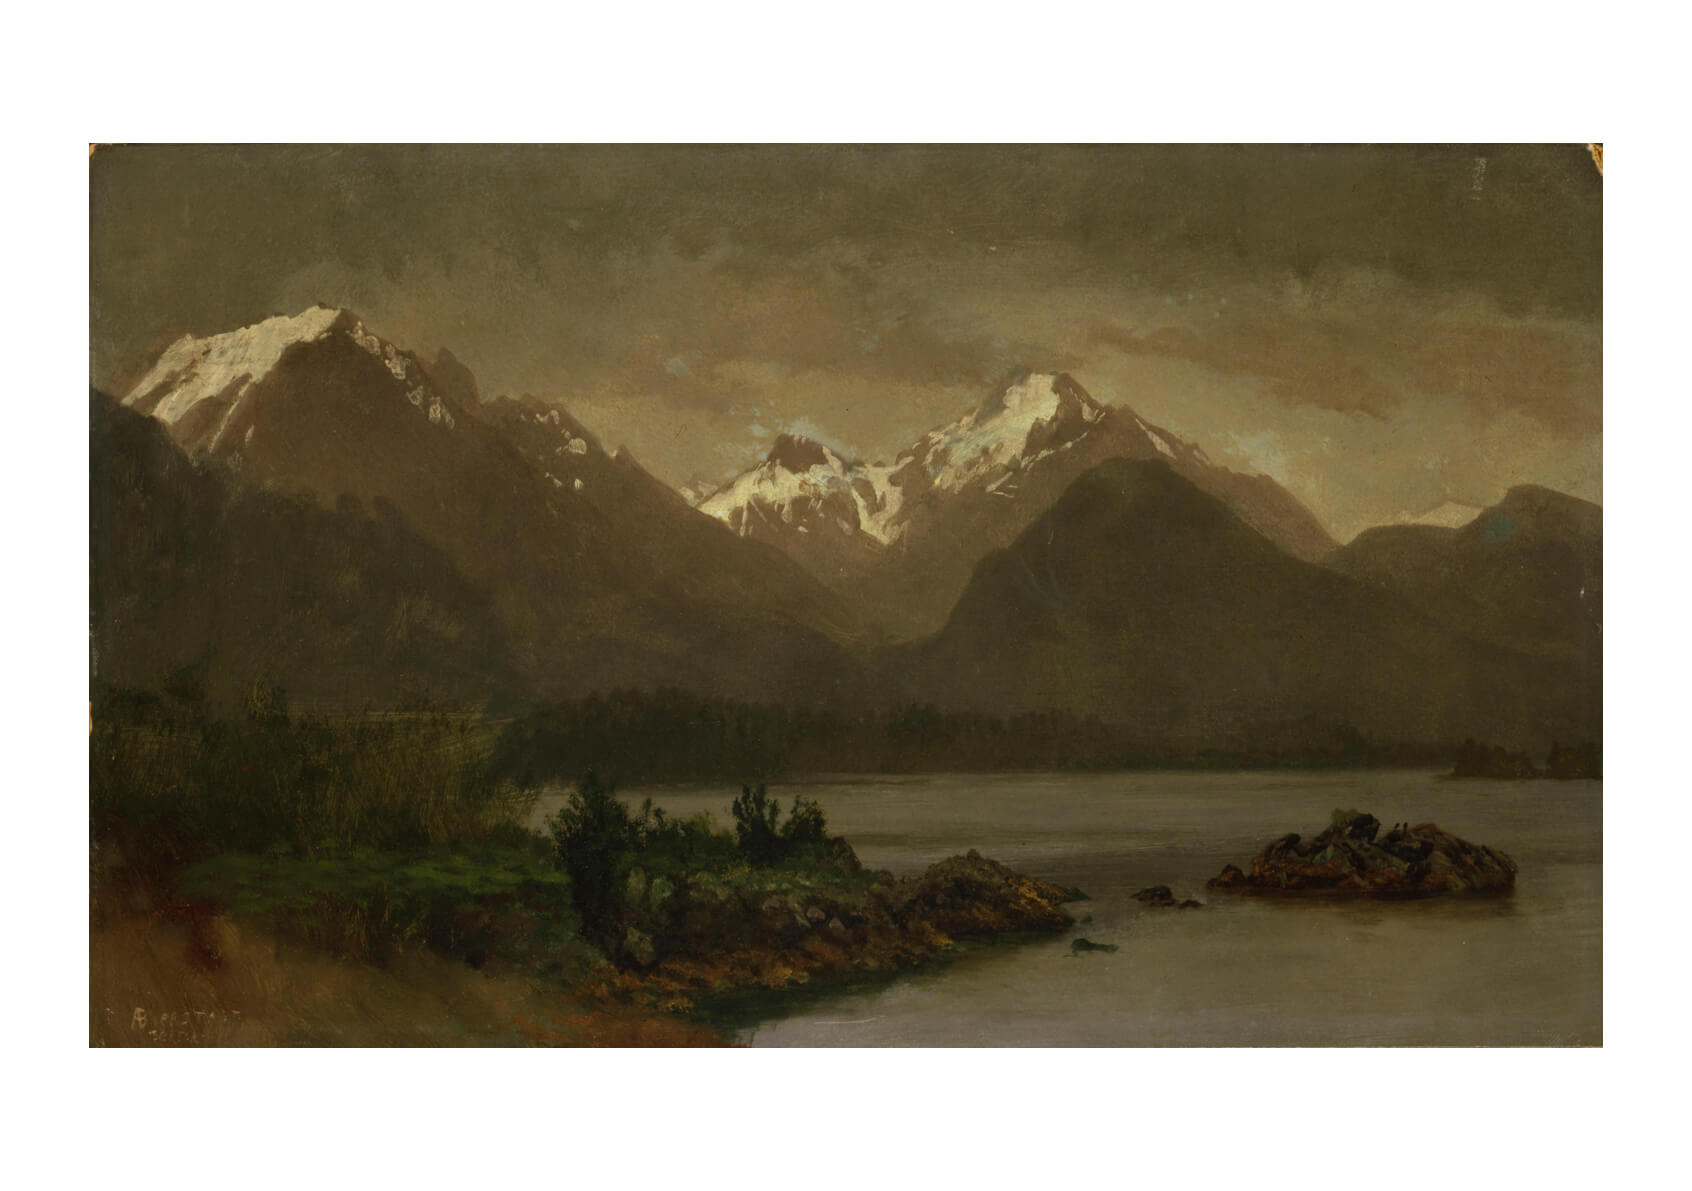 Albert Bierstadt - Untitled mountains and lake